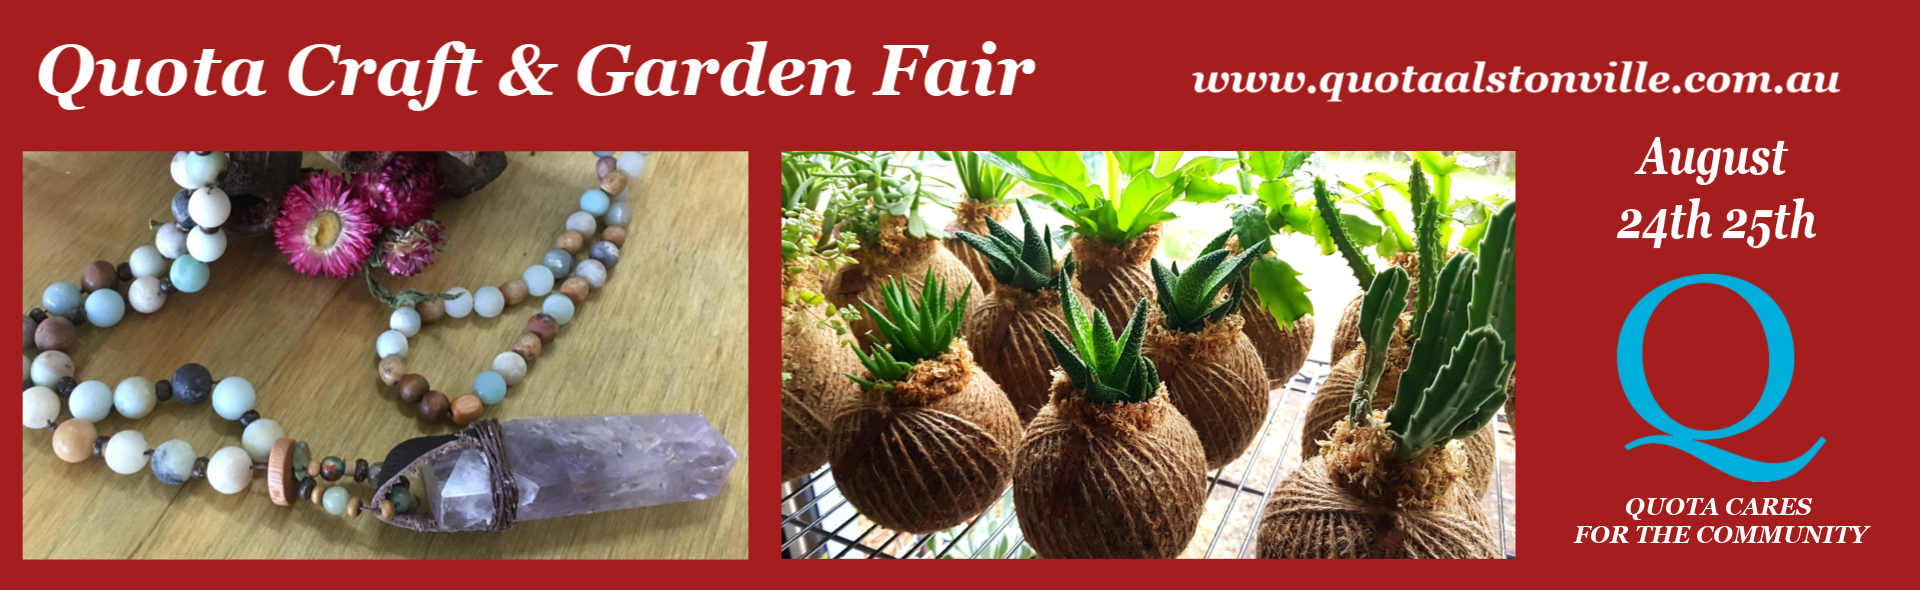 Quota Craft Garden Fair Home Page Banner